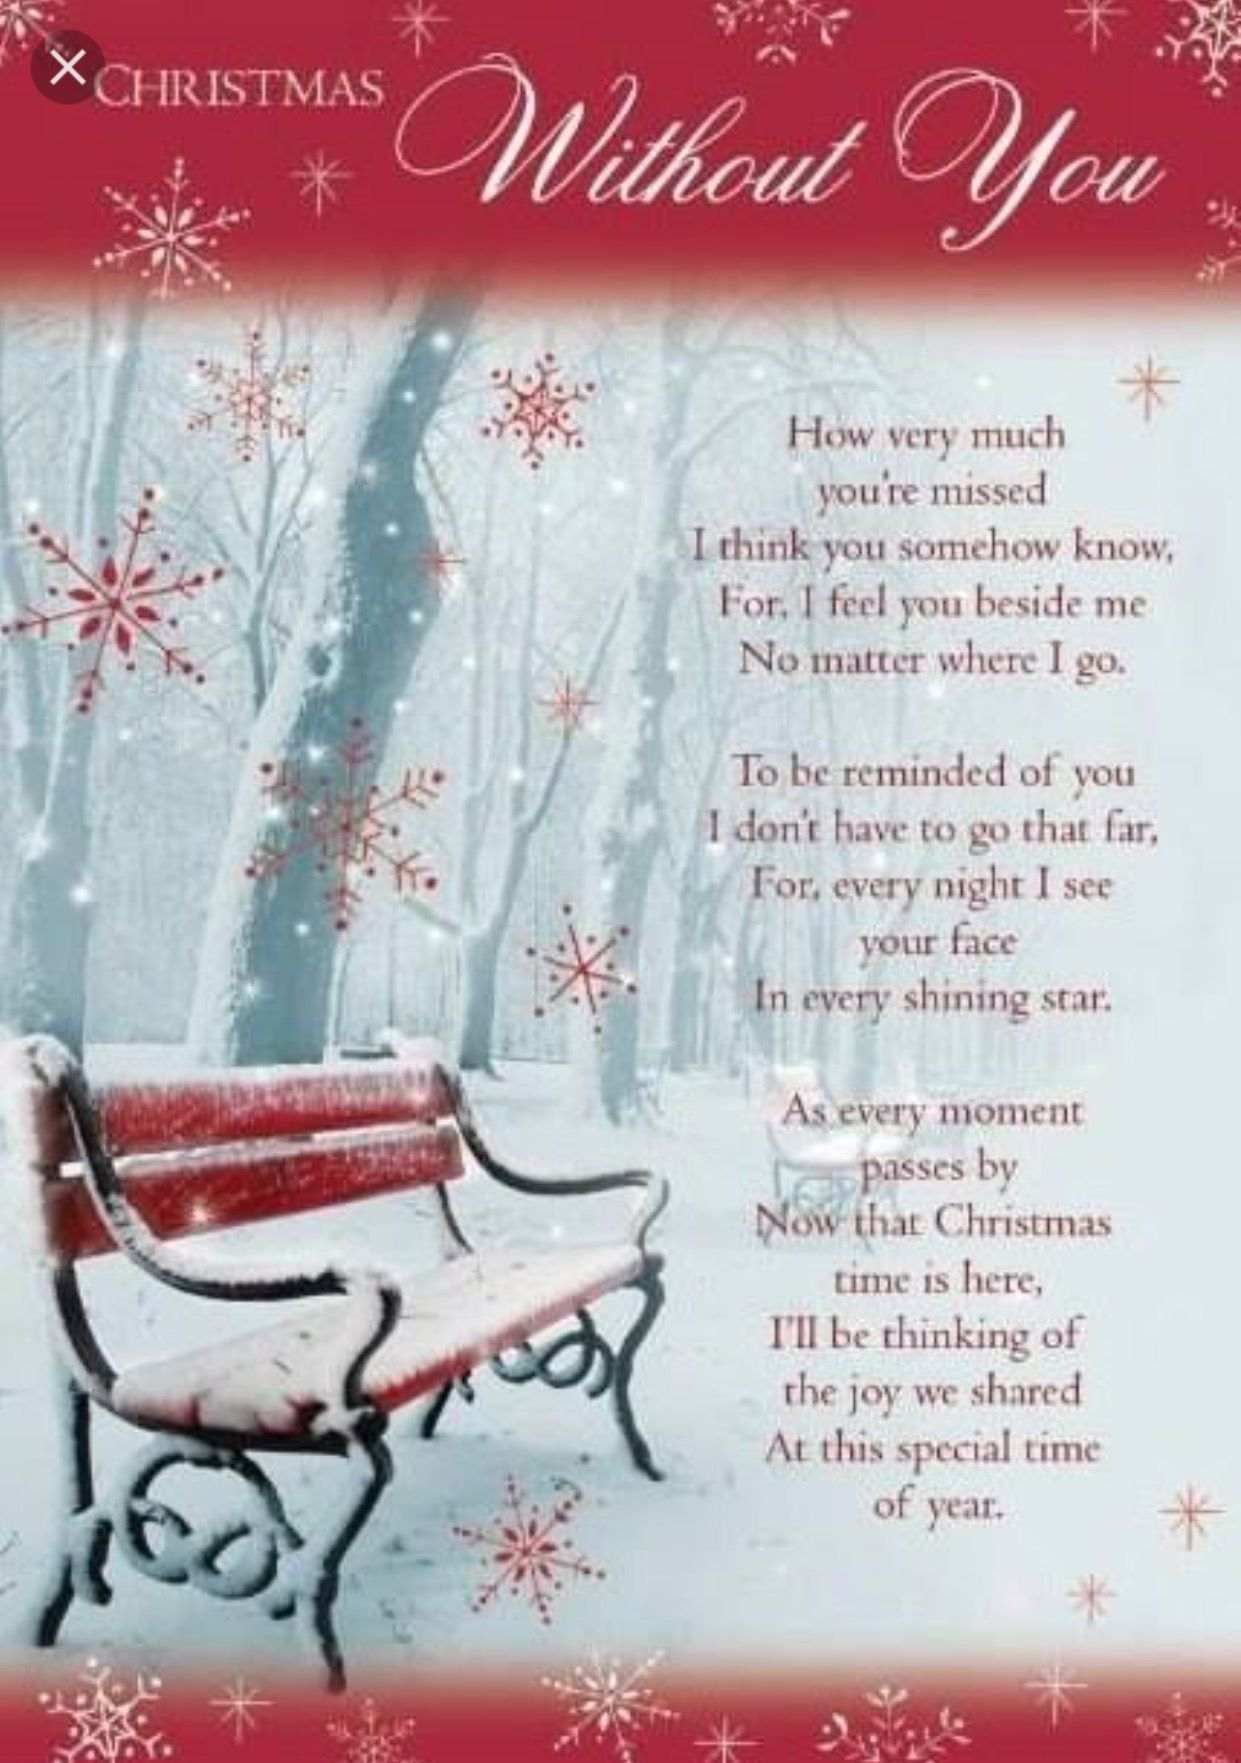 Pin by Penny Whary on Memorials | Pinterest